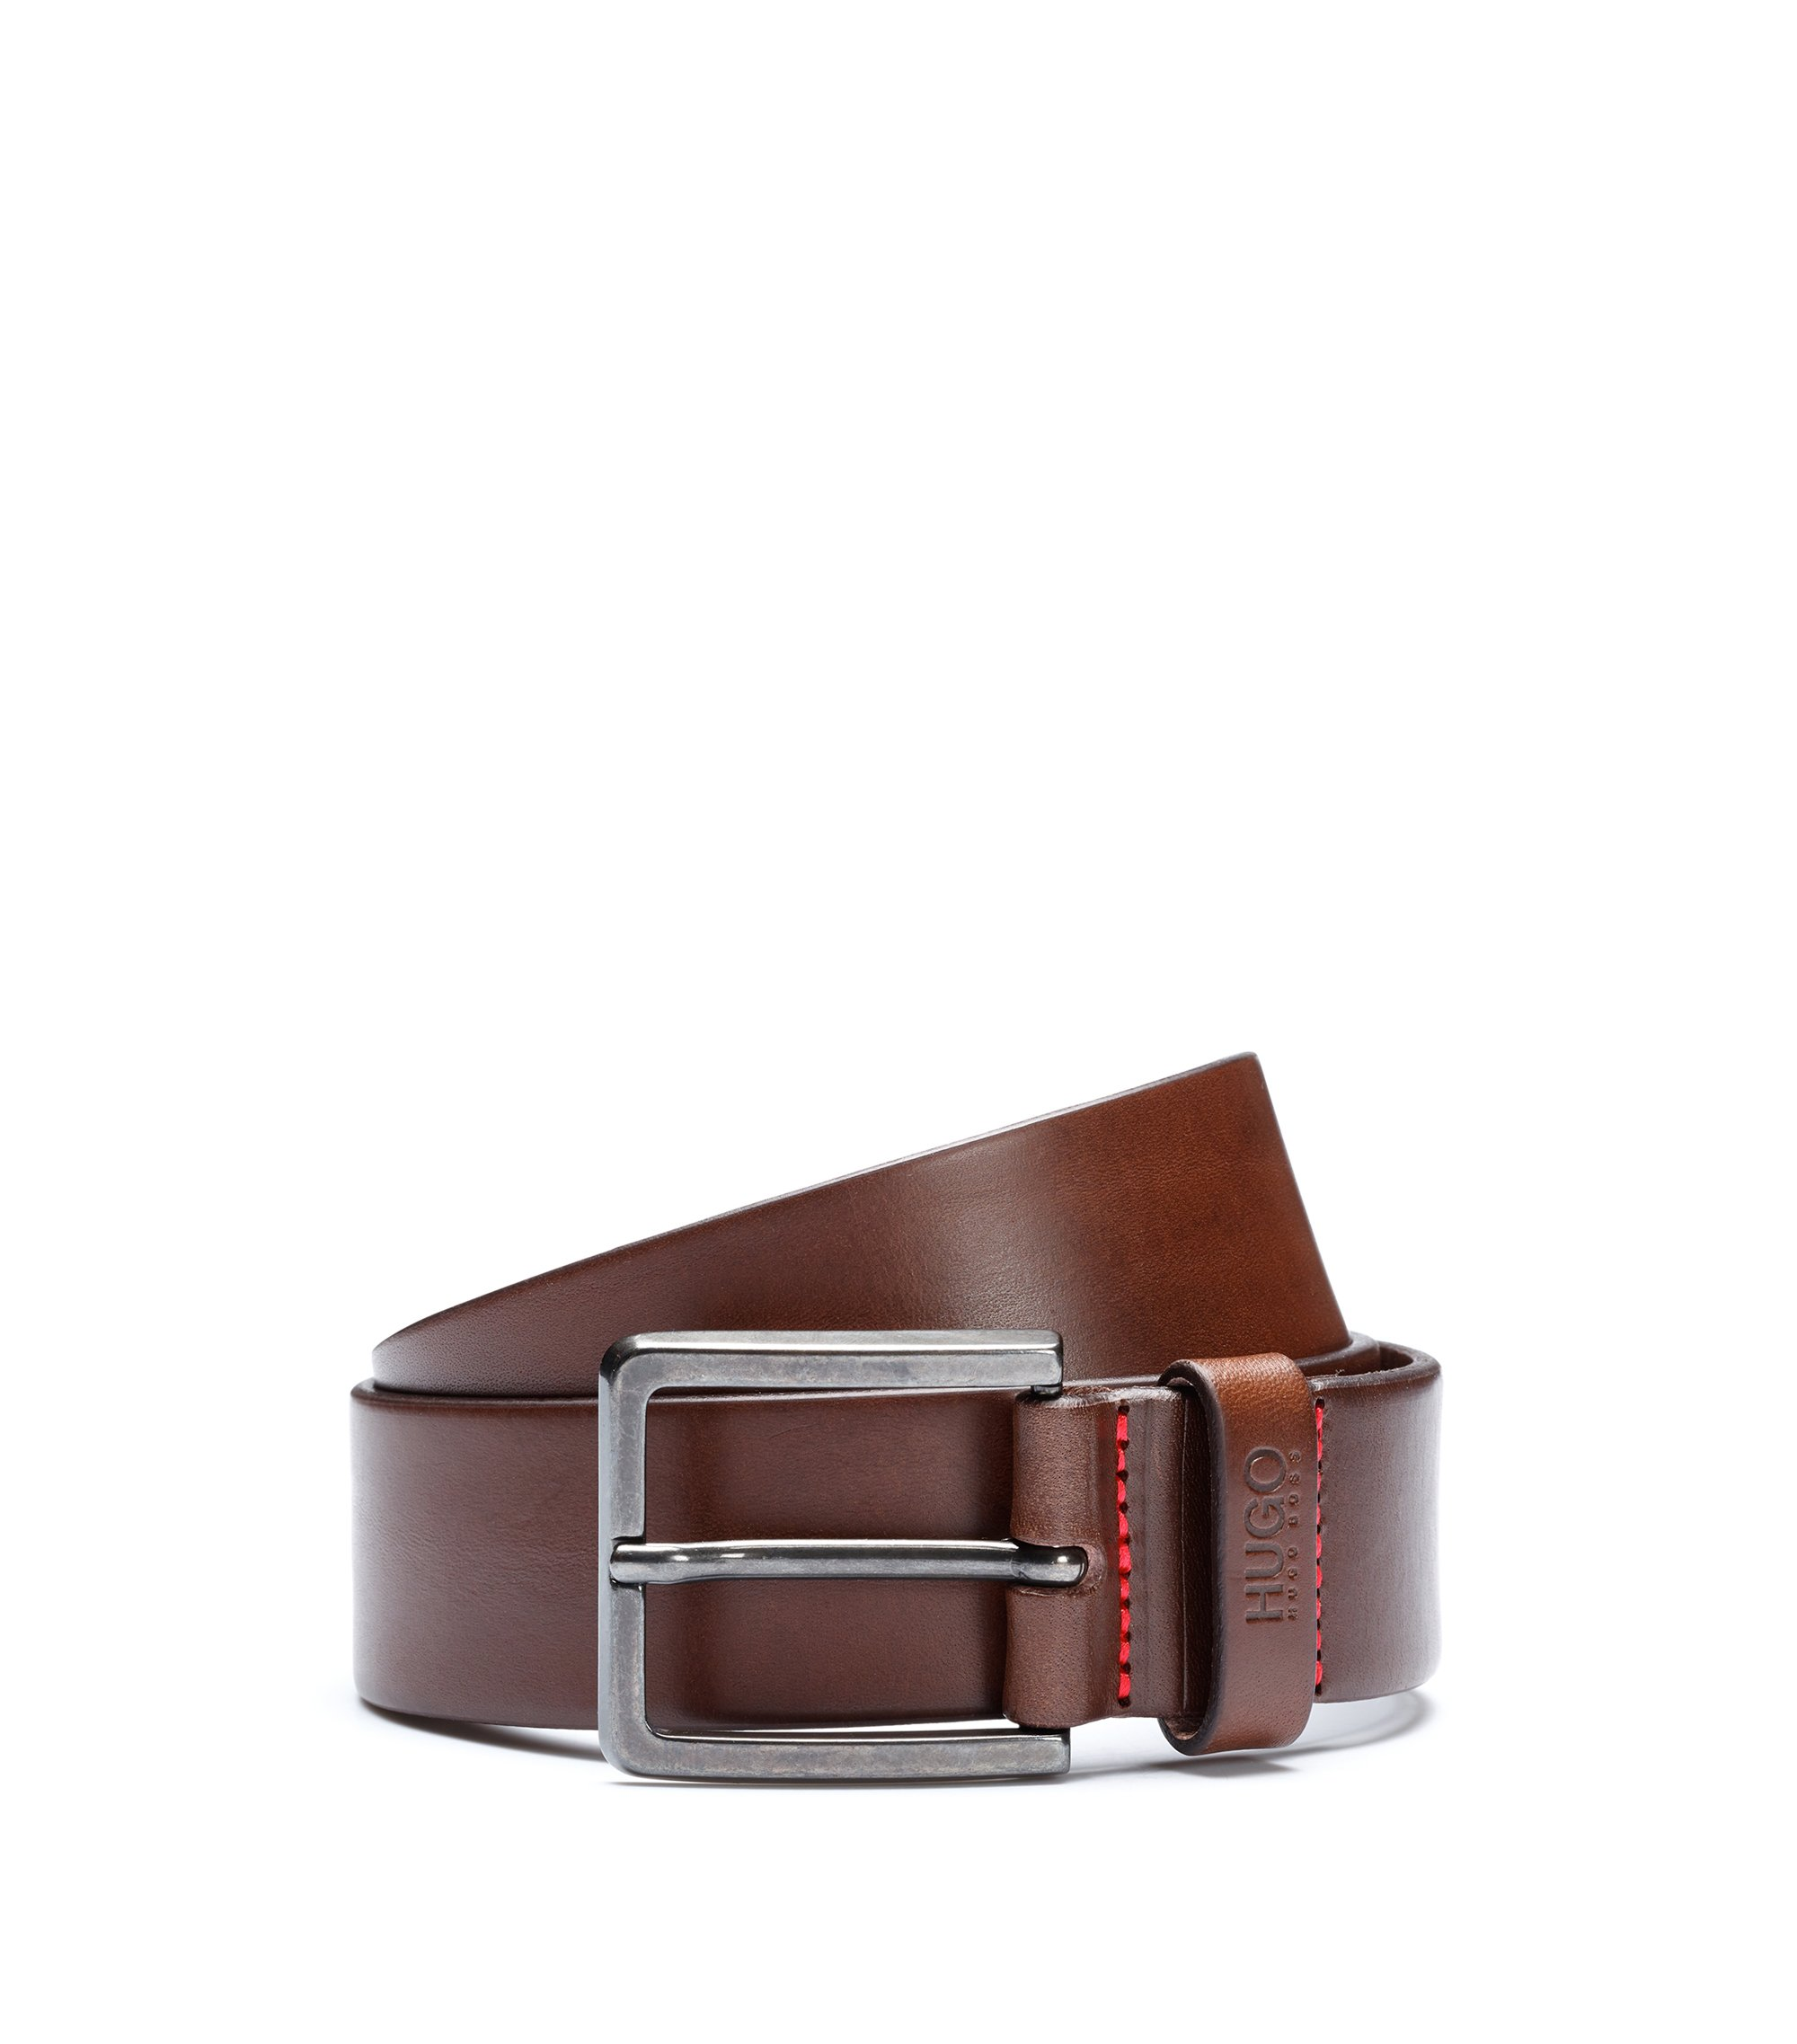 Leather belt with matte gunmetal hardware, Dark Brown